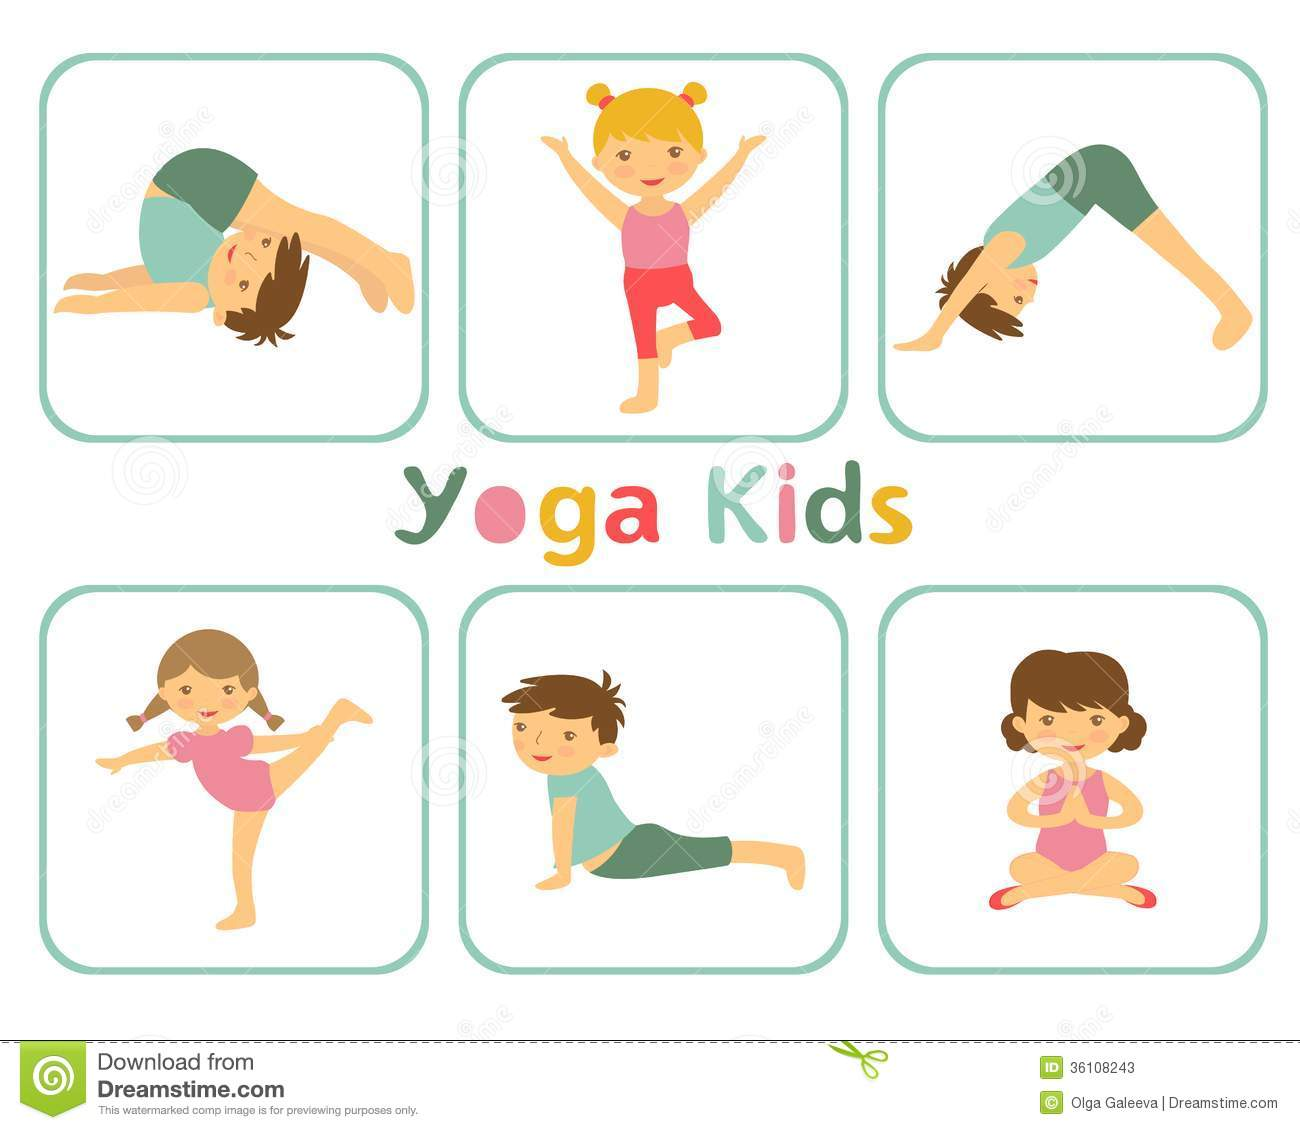 An illustration of little kids doing yoga.